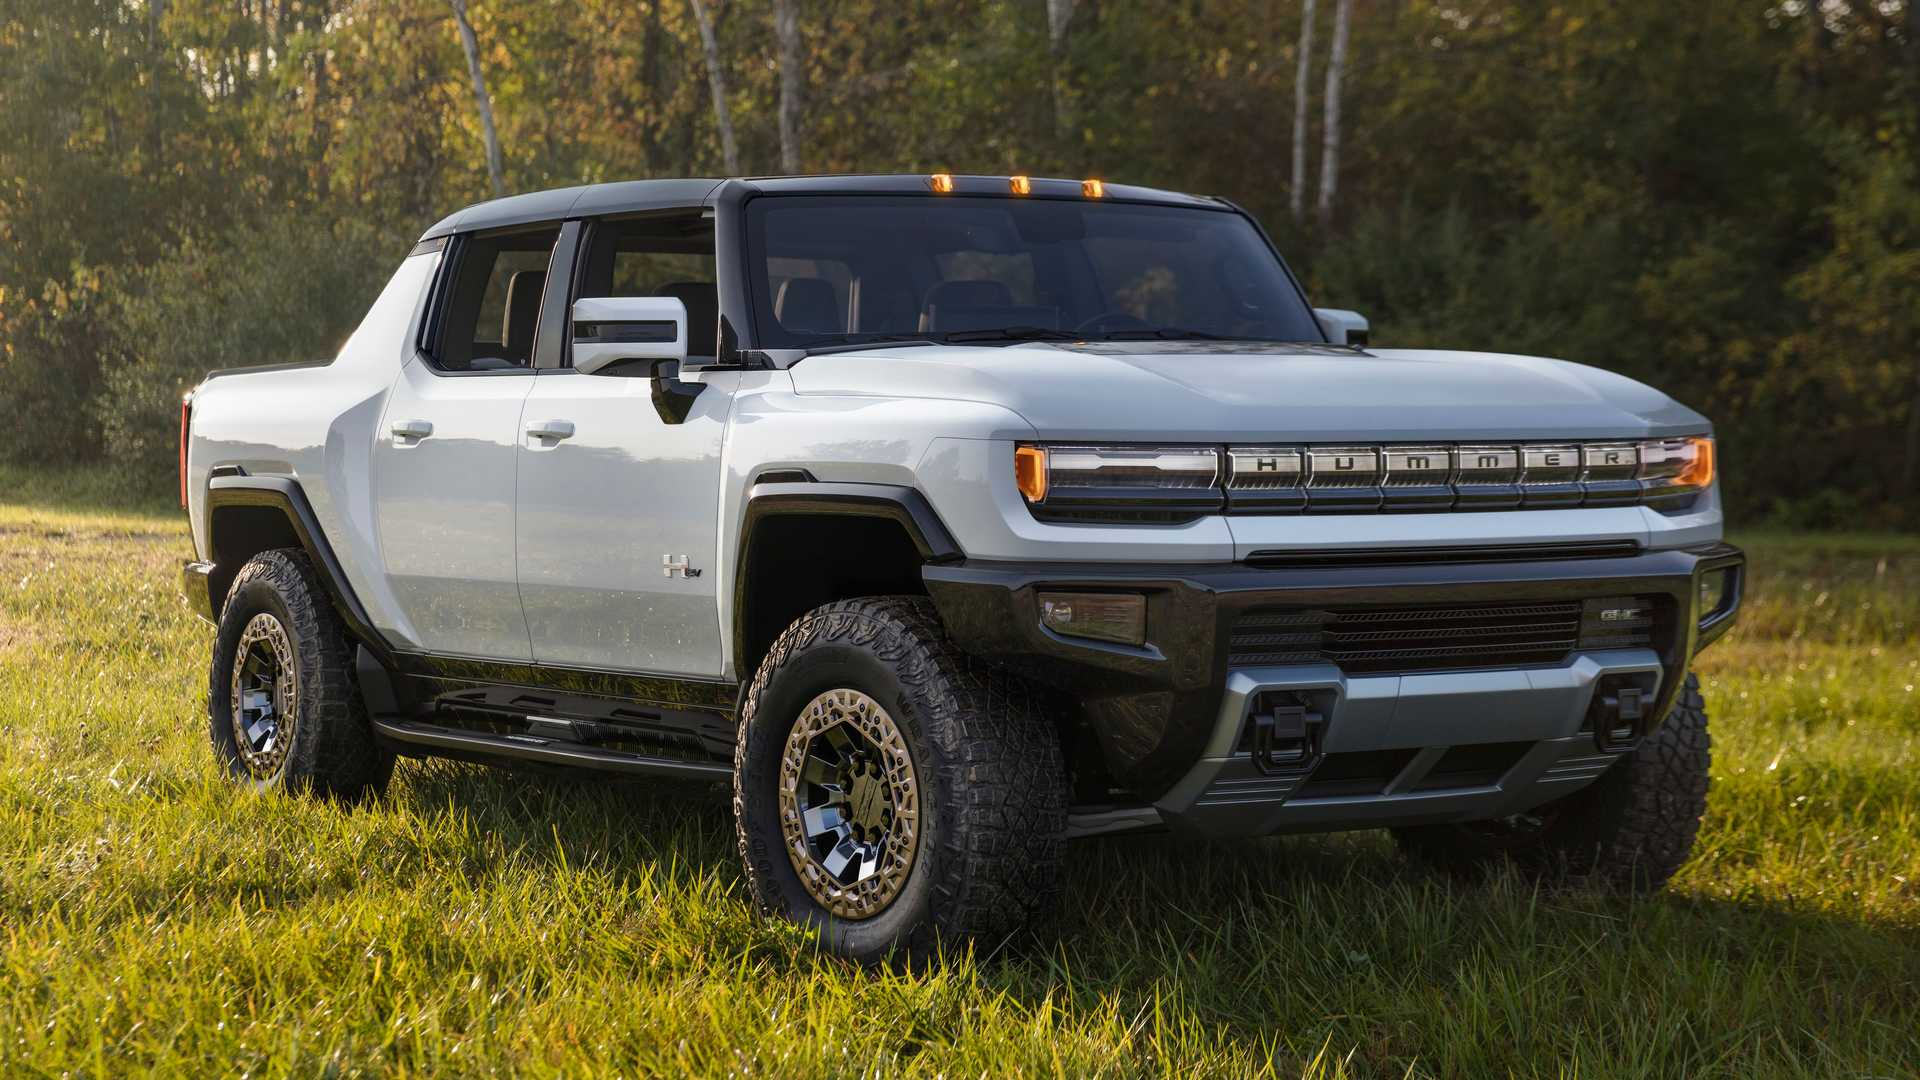 2022 GMC Hummer EV: Pics, Specs, Price, And More | Motor1.com